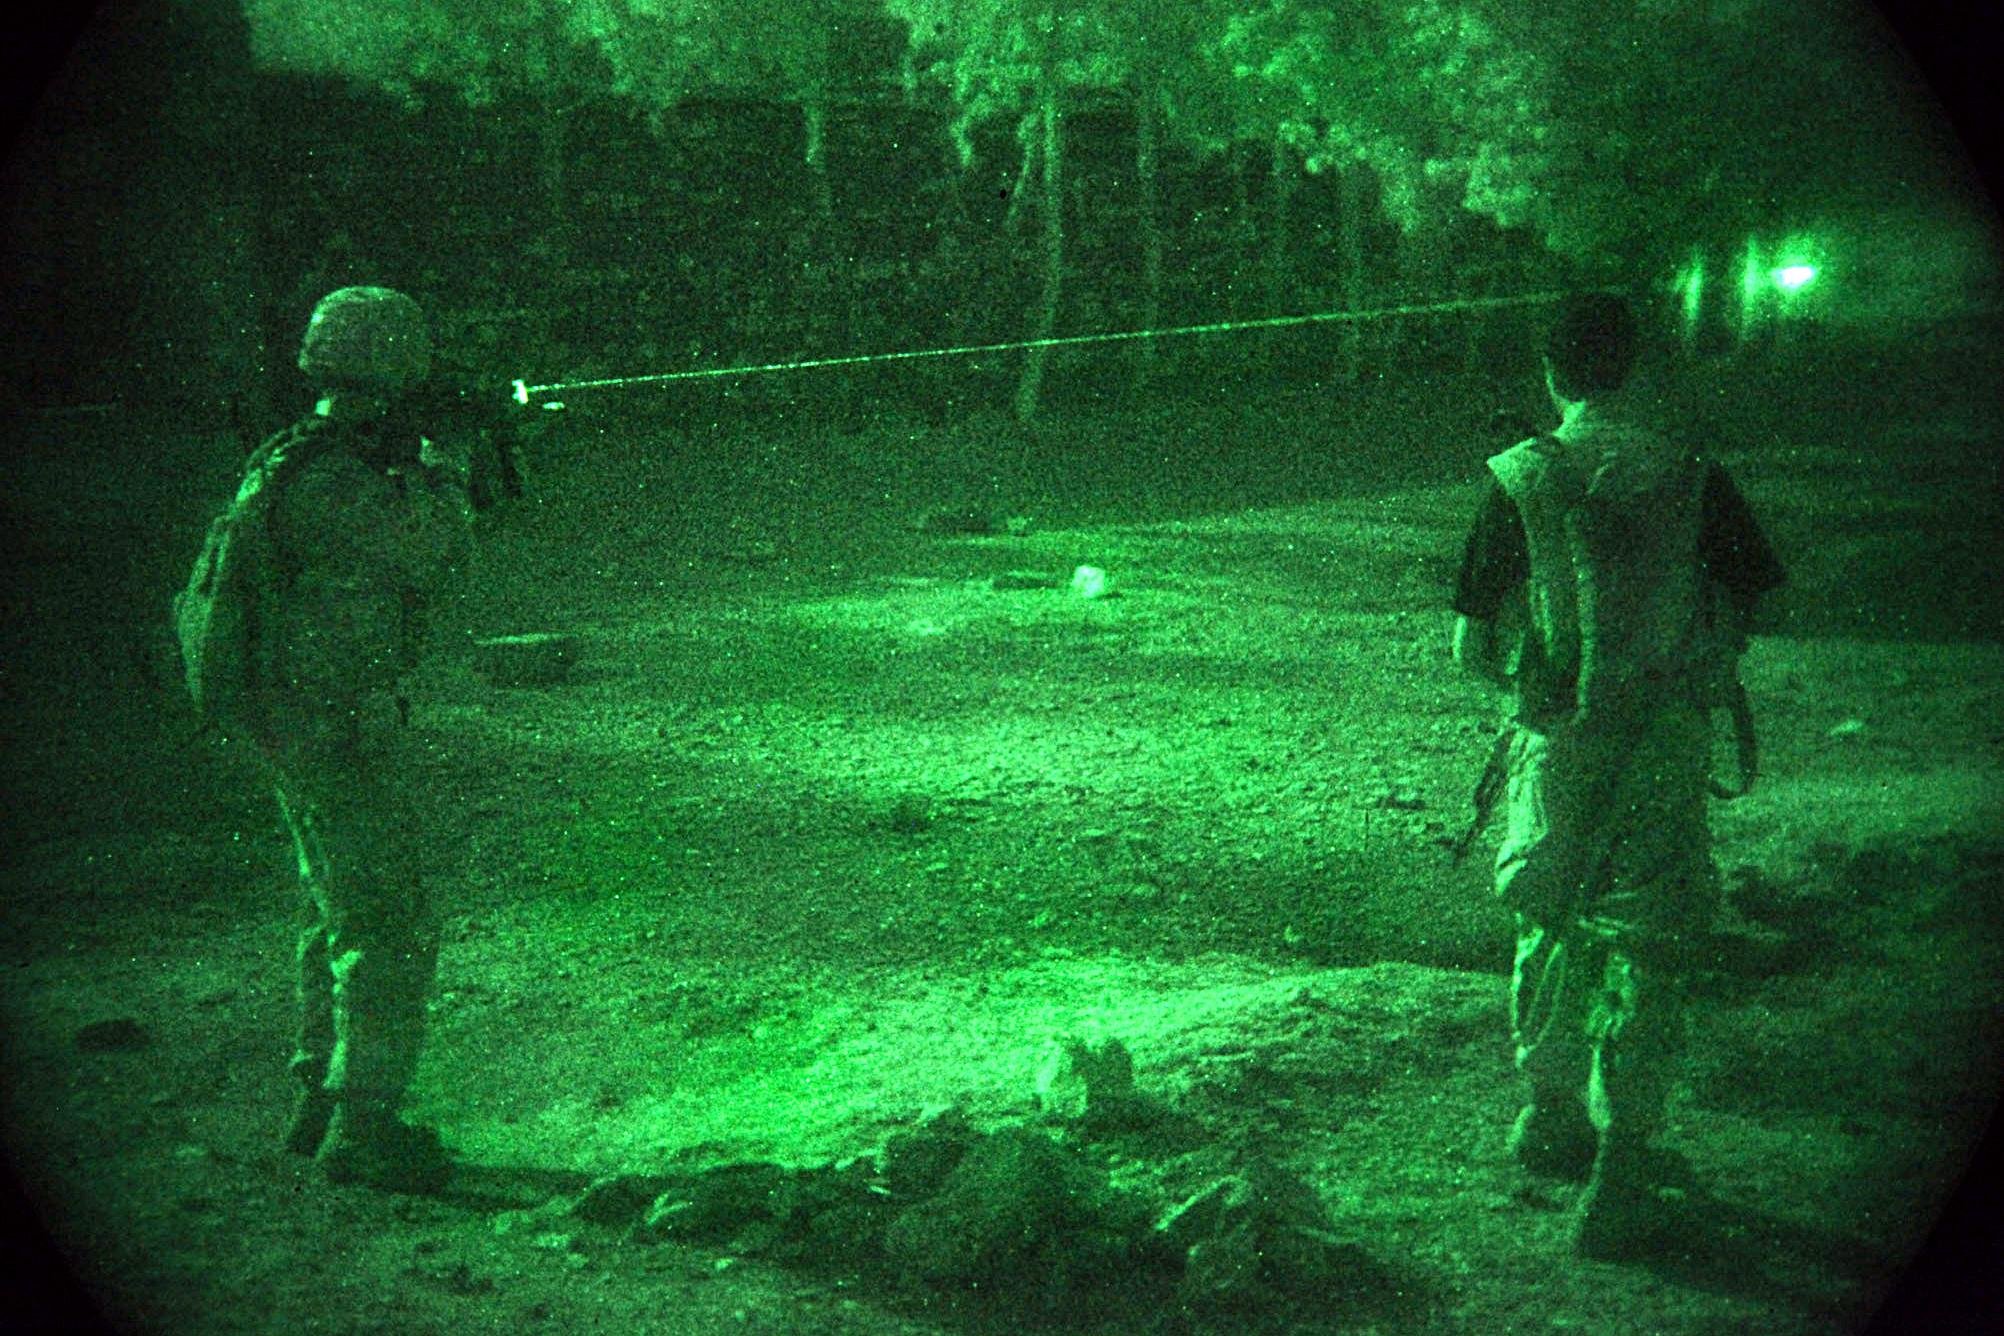 The Human Eye and Night Vision Goggles